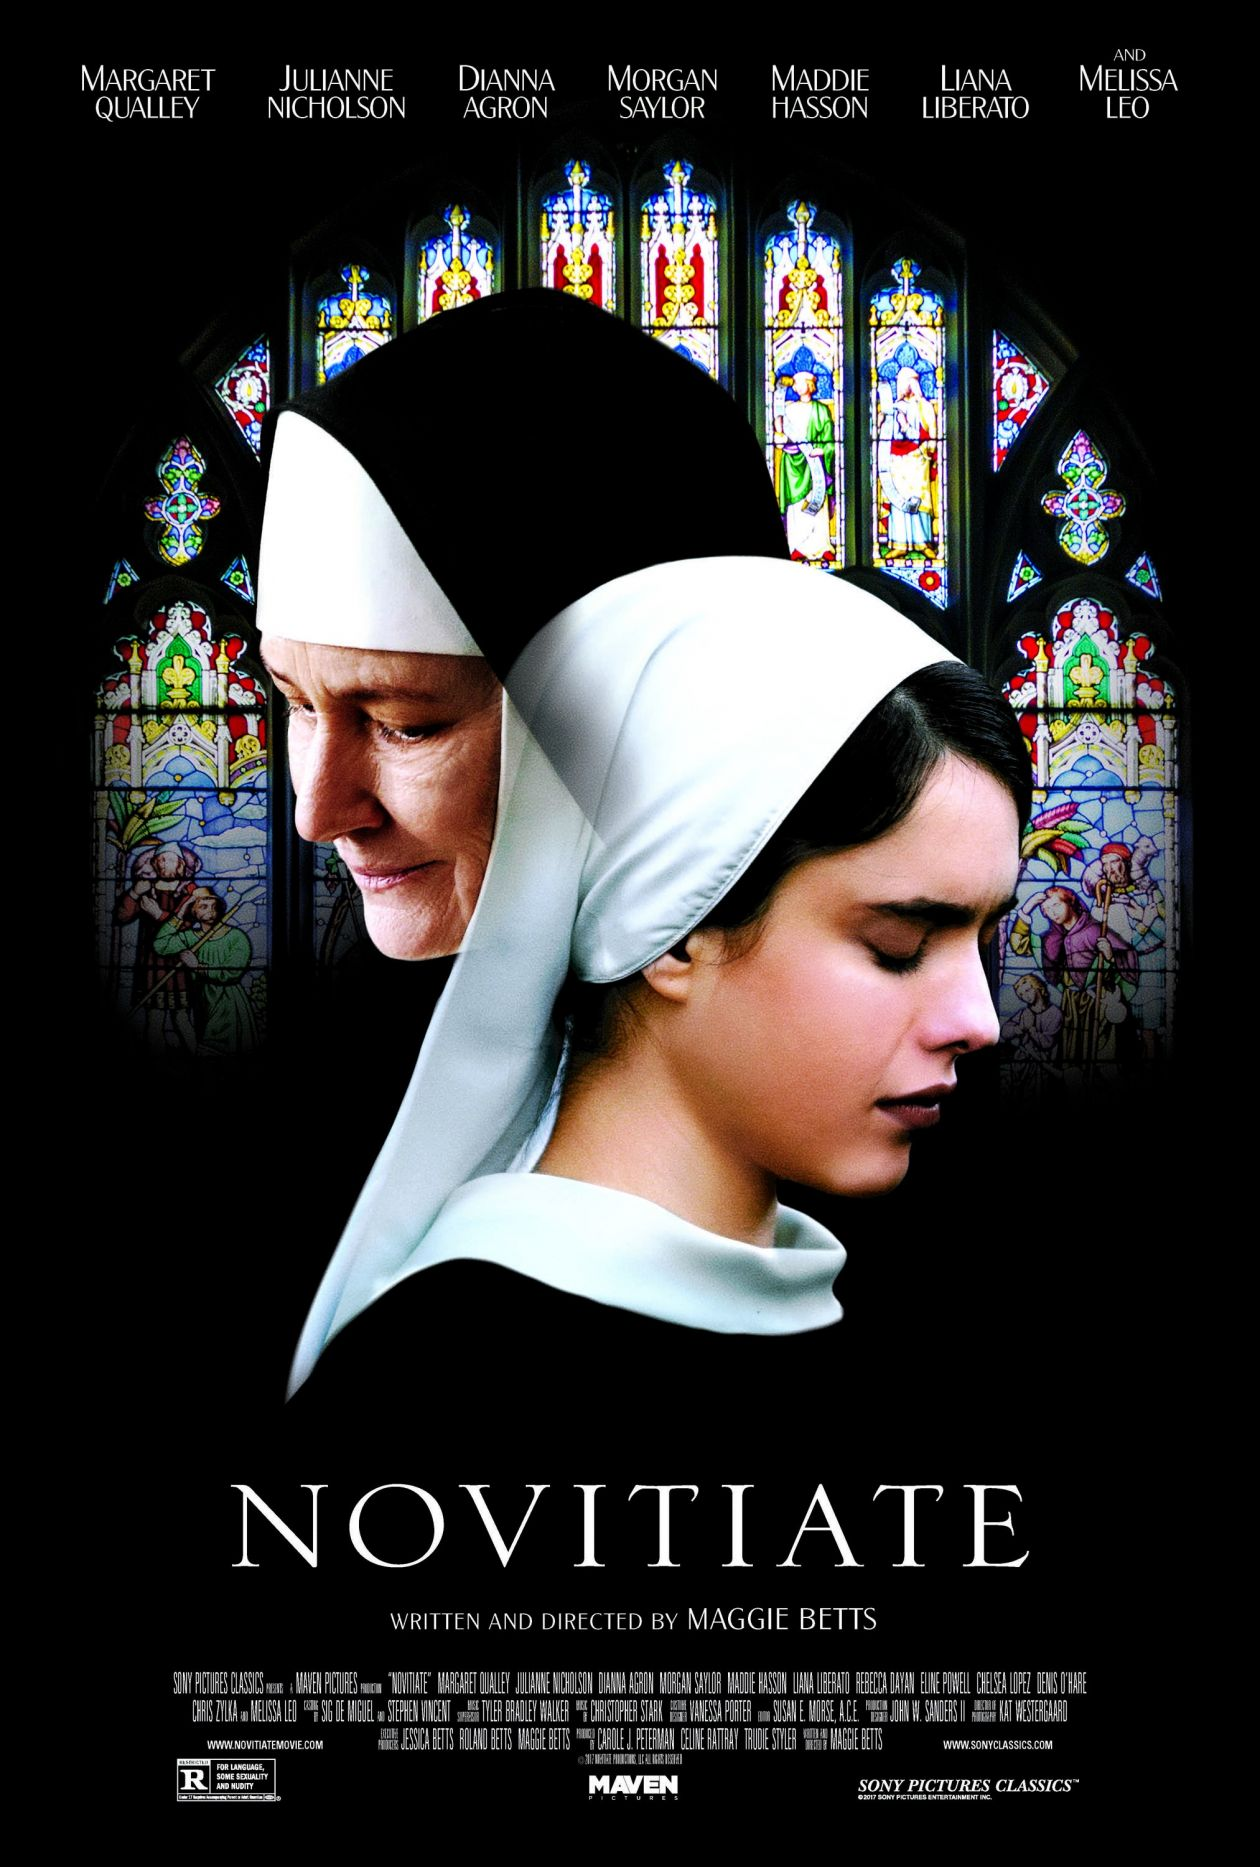 Margaret Qualley | Novitiate / Margaret Betts 2017 Movie Poster / Affiche film